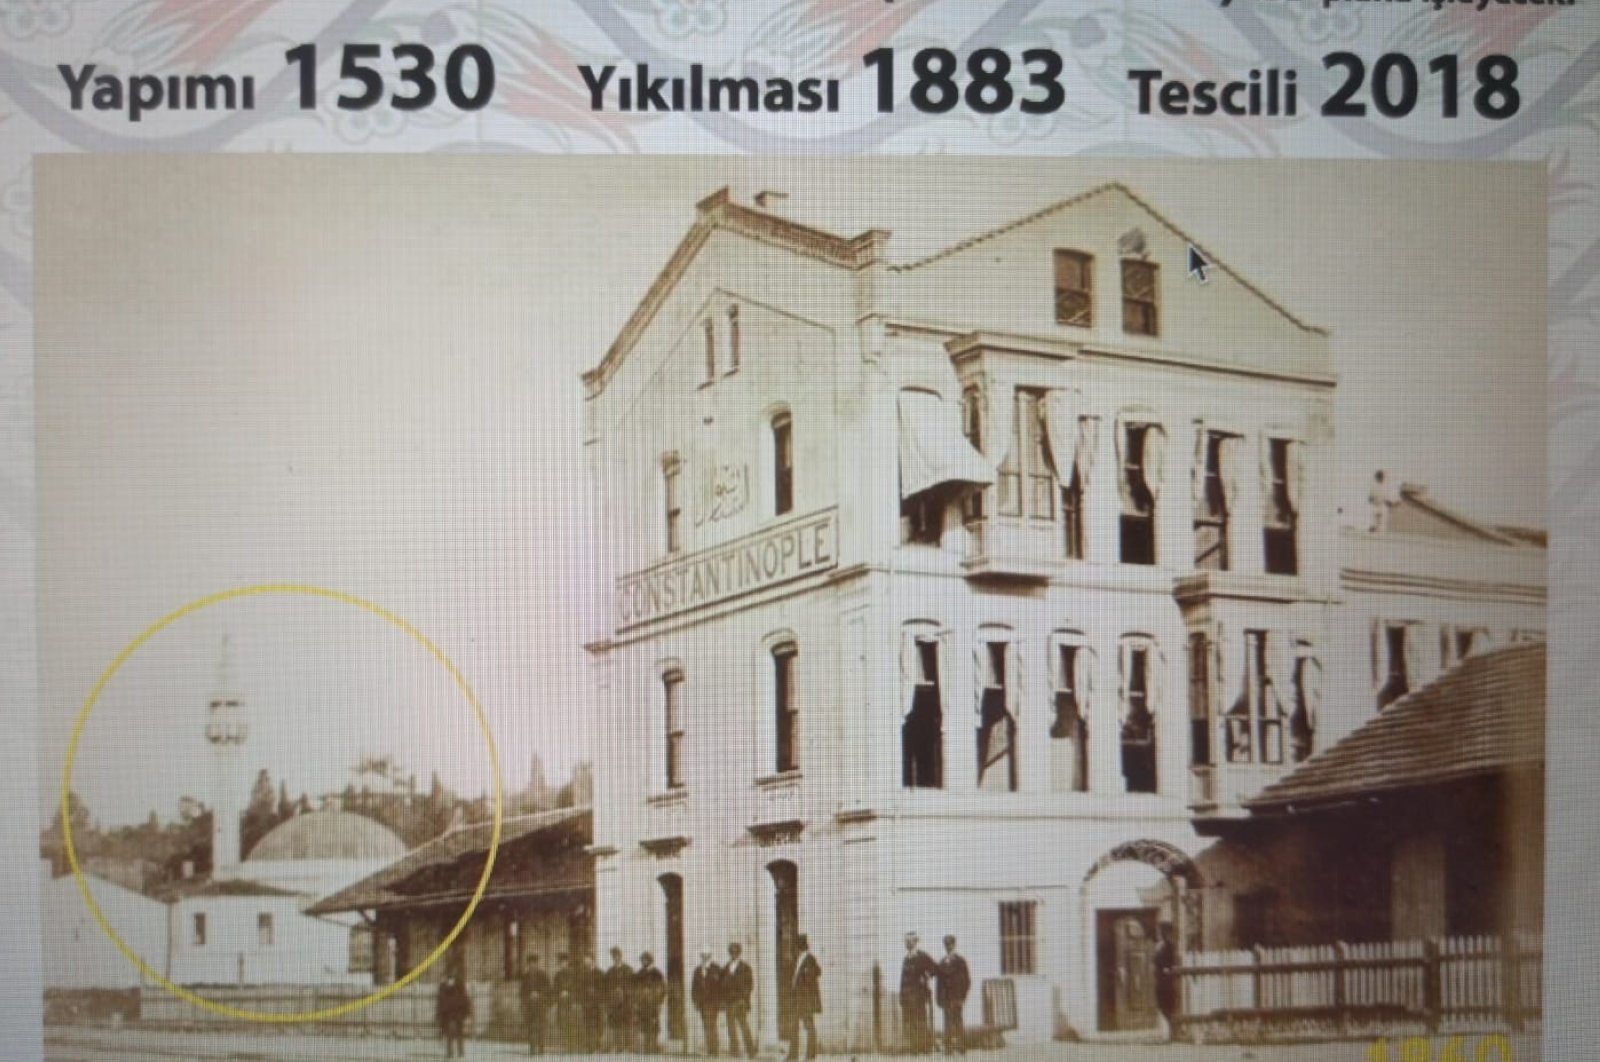 A historical photo showing the Daya Hatun Mosque which the association seeks to rebuild after it was demolished in 1883 in Istanbul, Turkey. (AA Photo)